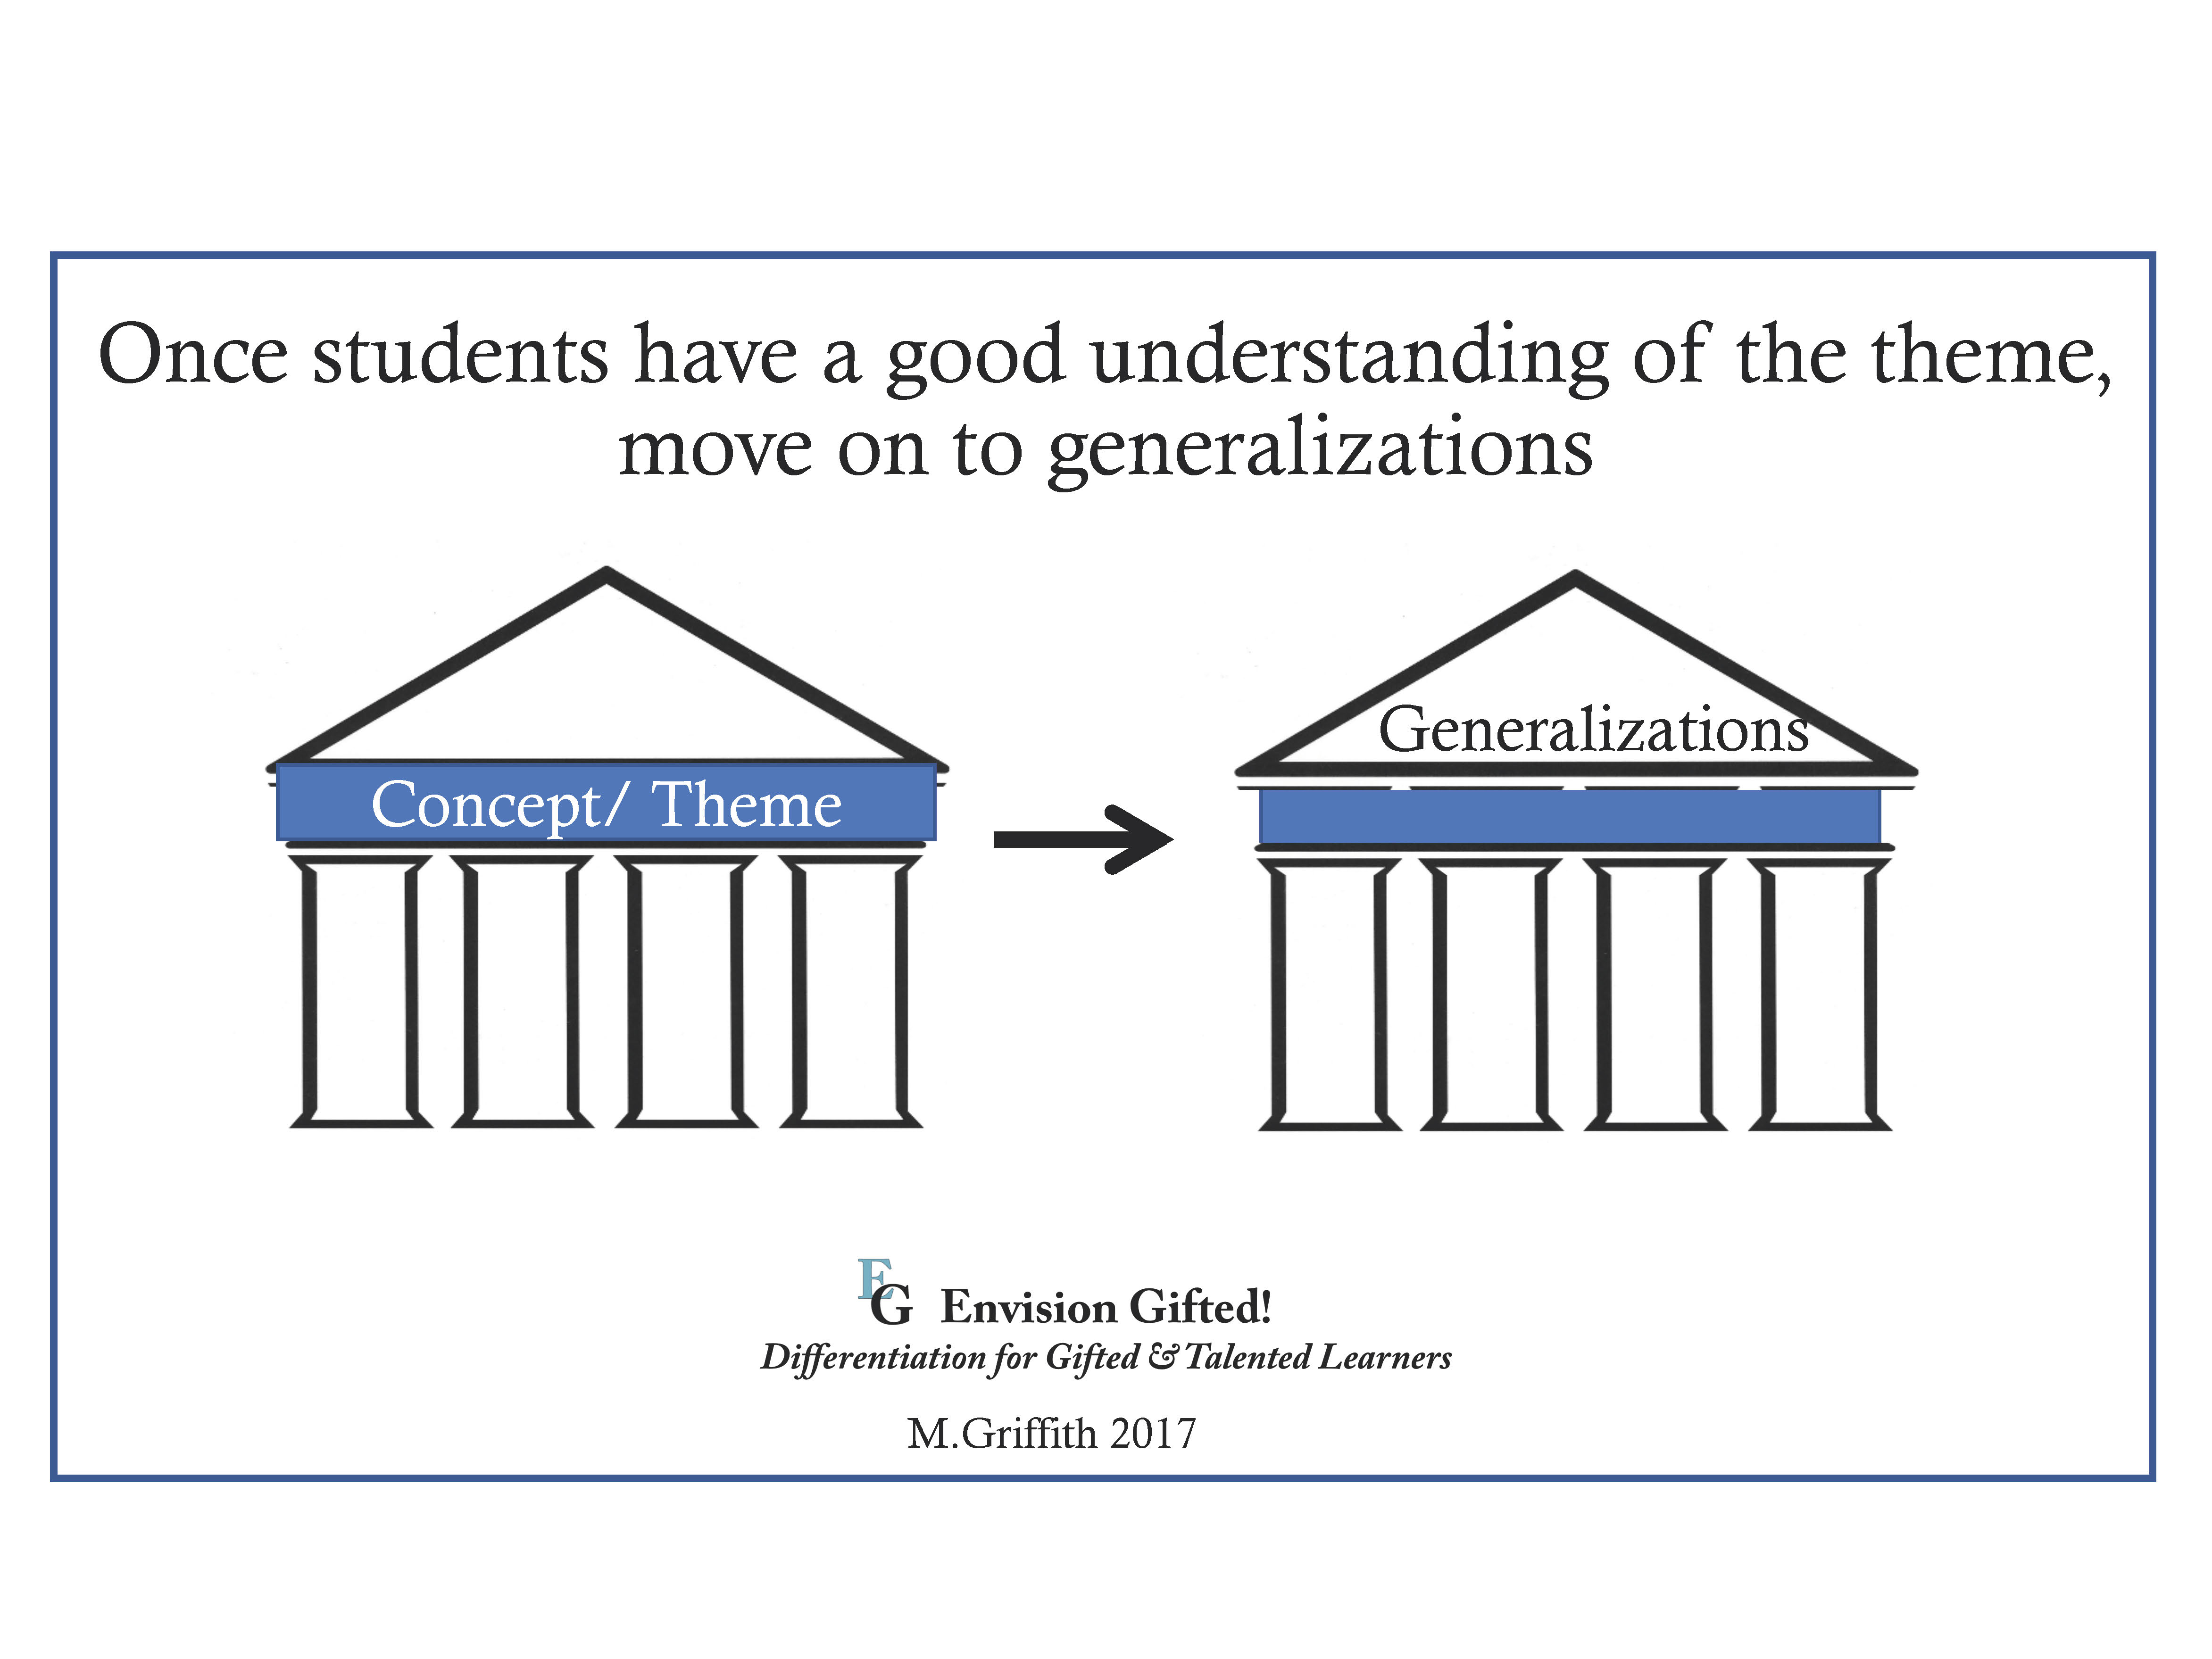 Envision Gifted. Theme to generalization